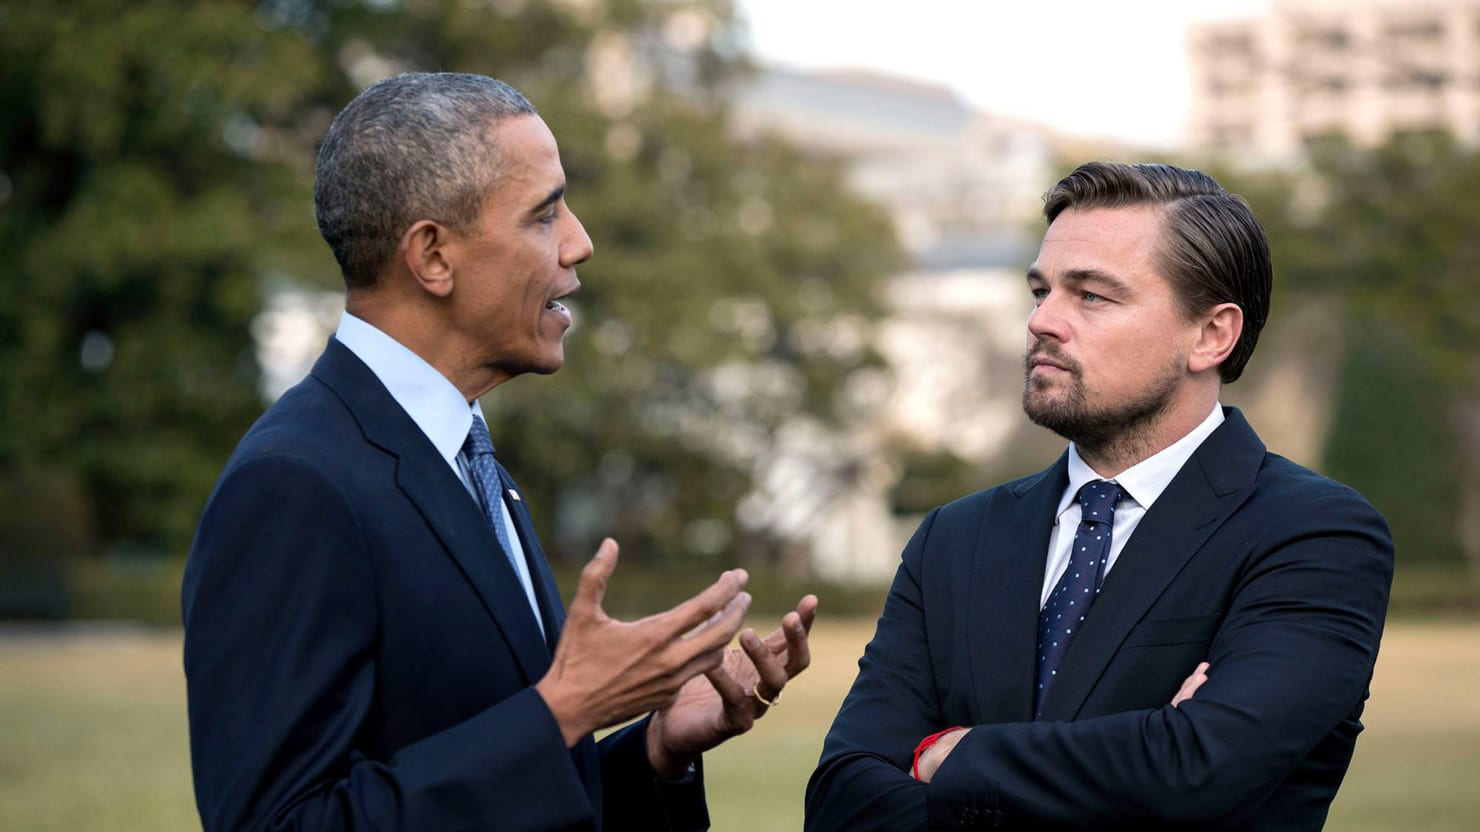 Leo DiCaprio Praises Obama, Shades Donald Trump in Climate Change Talk at South by South Lawn